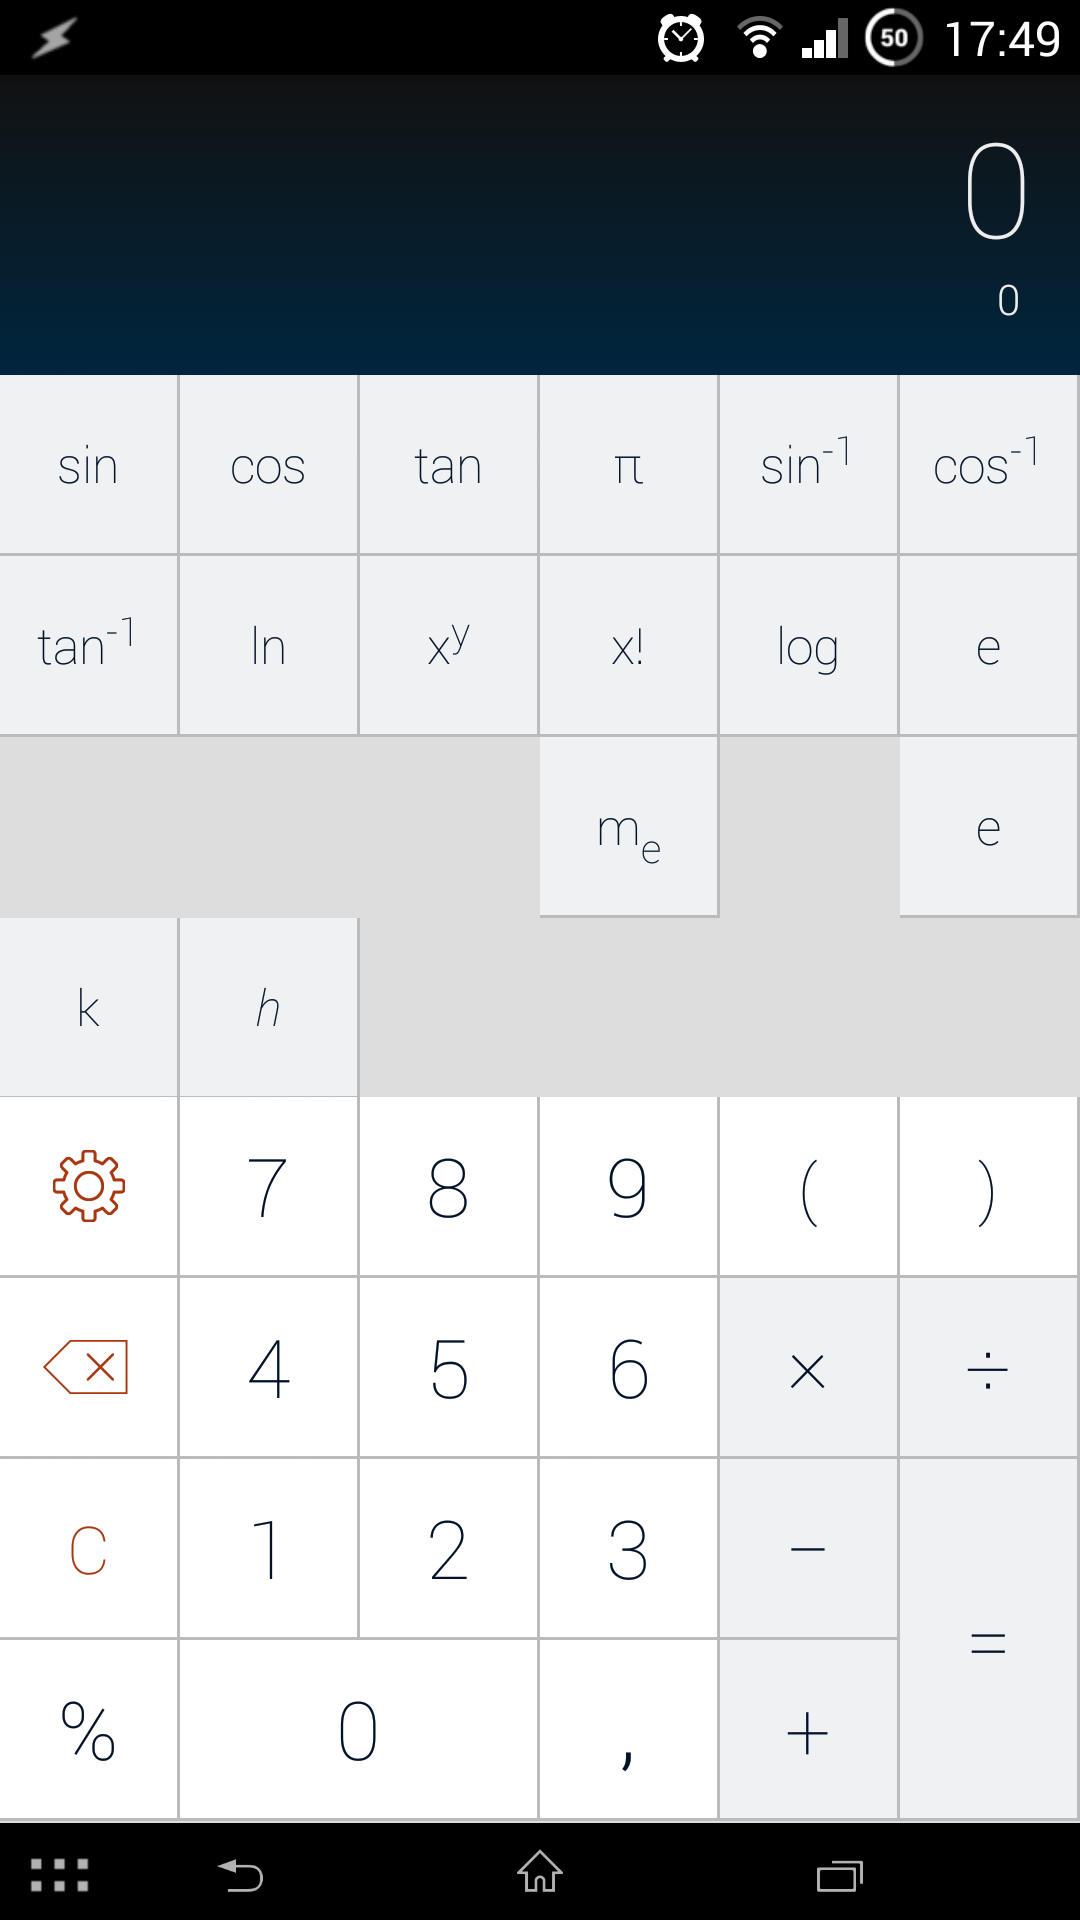 calcu-design-blau-weiß-volle